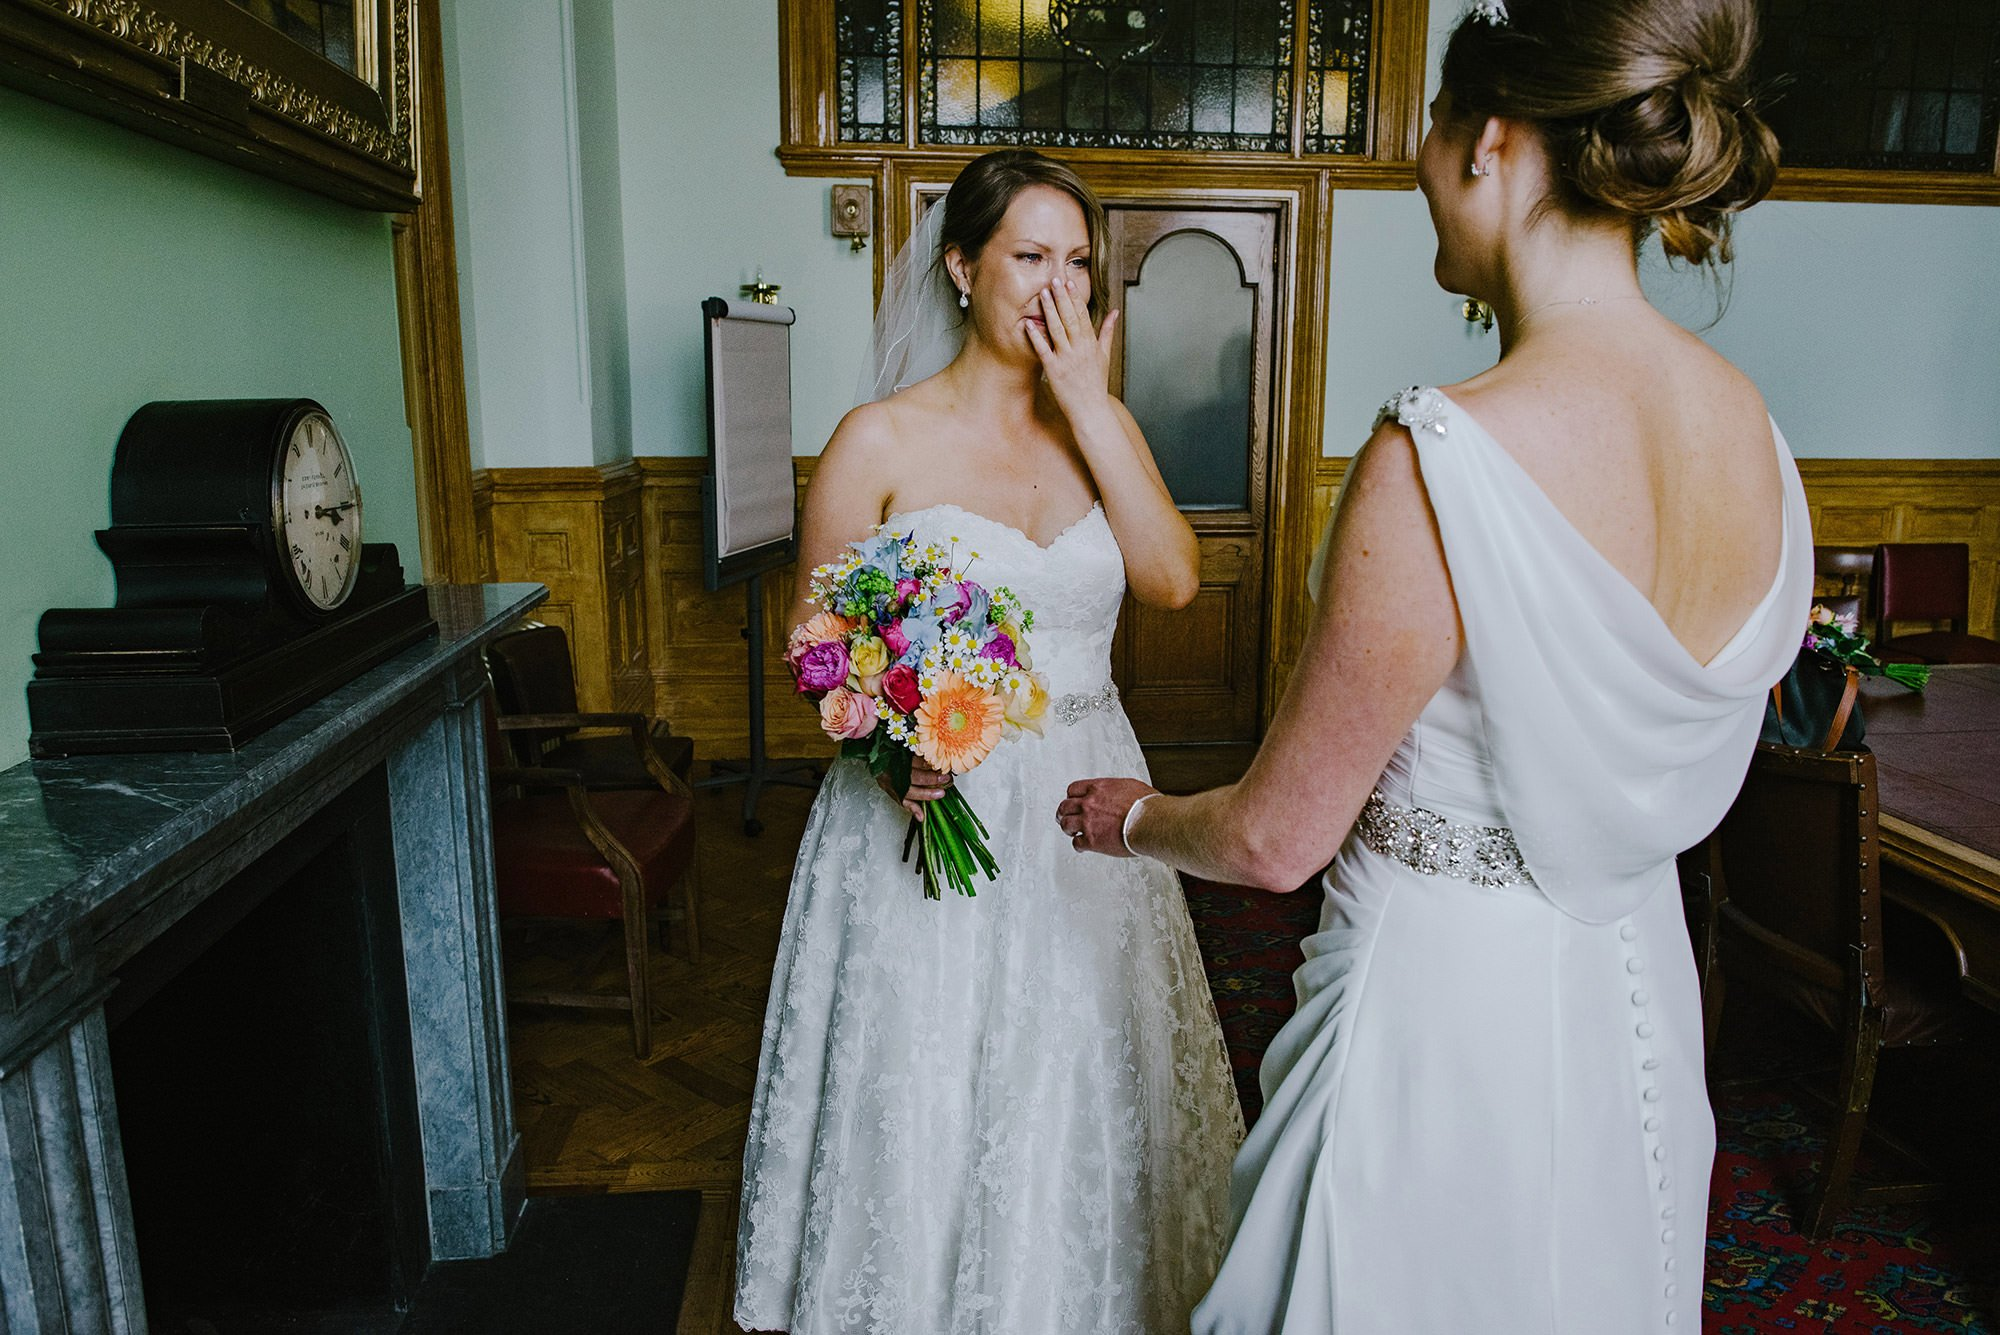 two brides seeing each other for the first time on the wedding day. brighton registry office